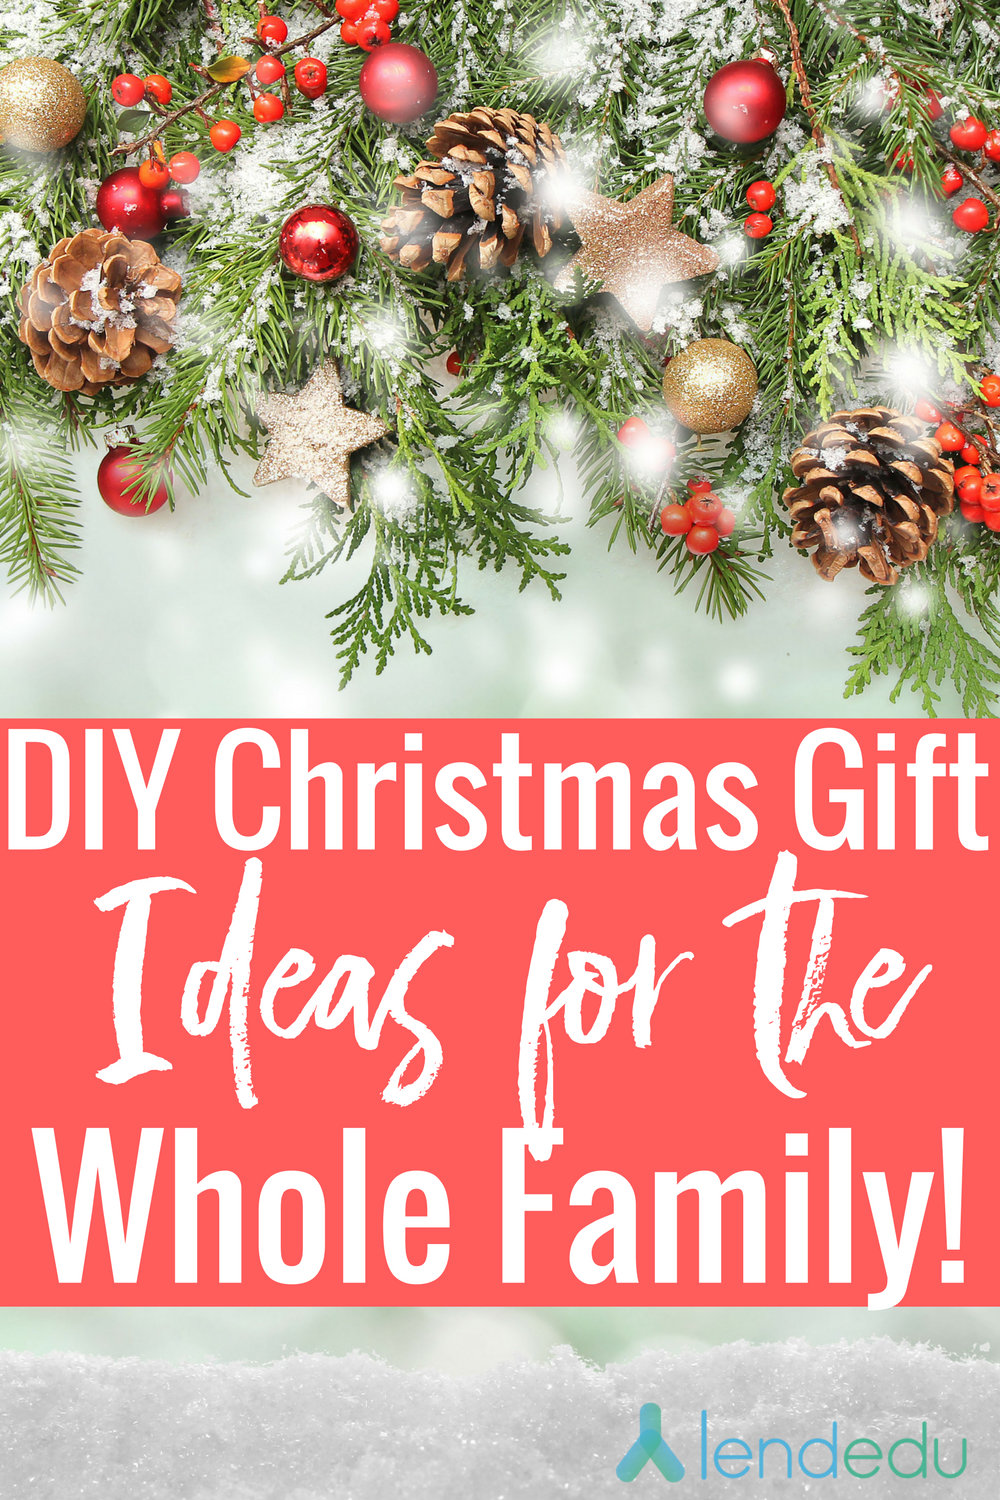 DIY Christmas Gifts for the Whole Family - LendEDU